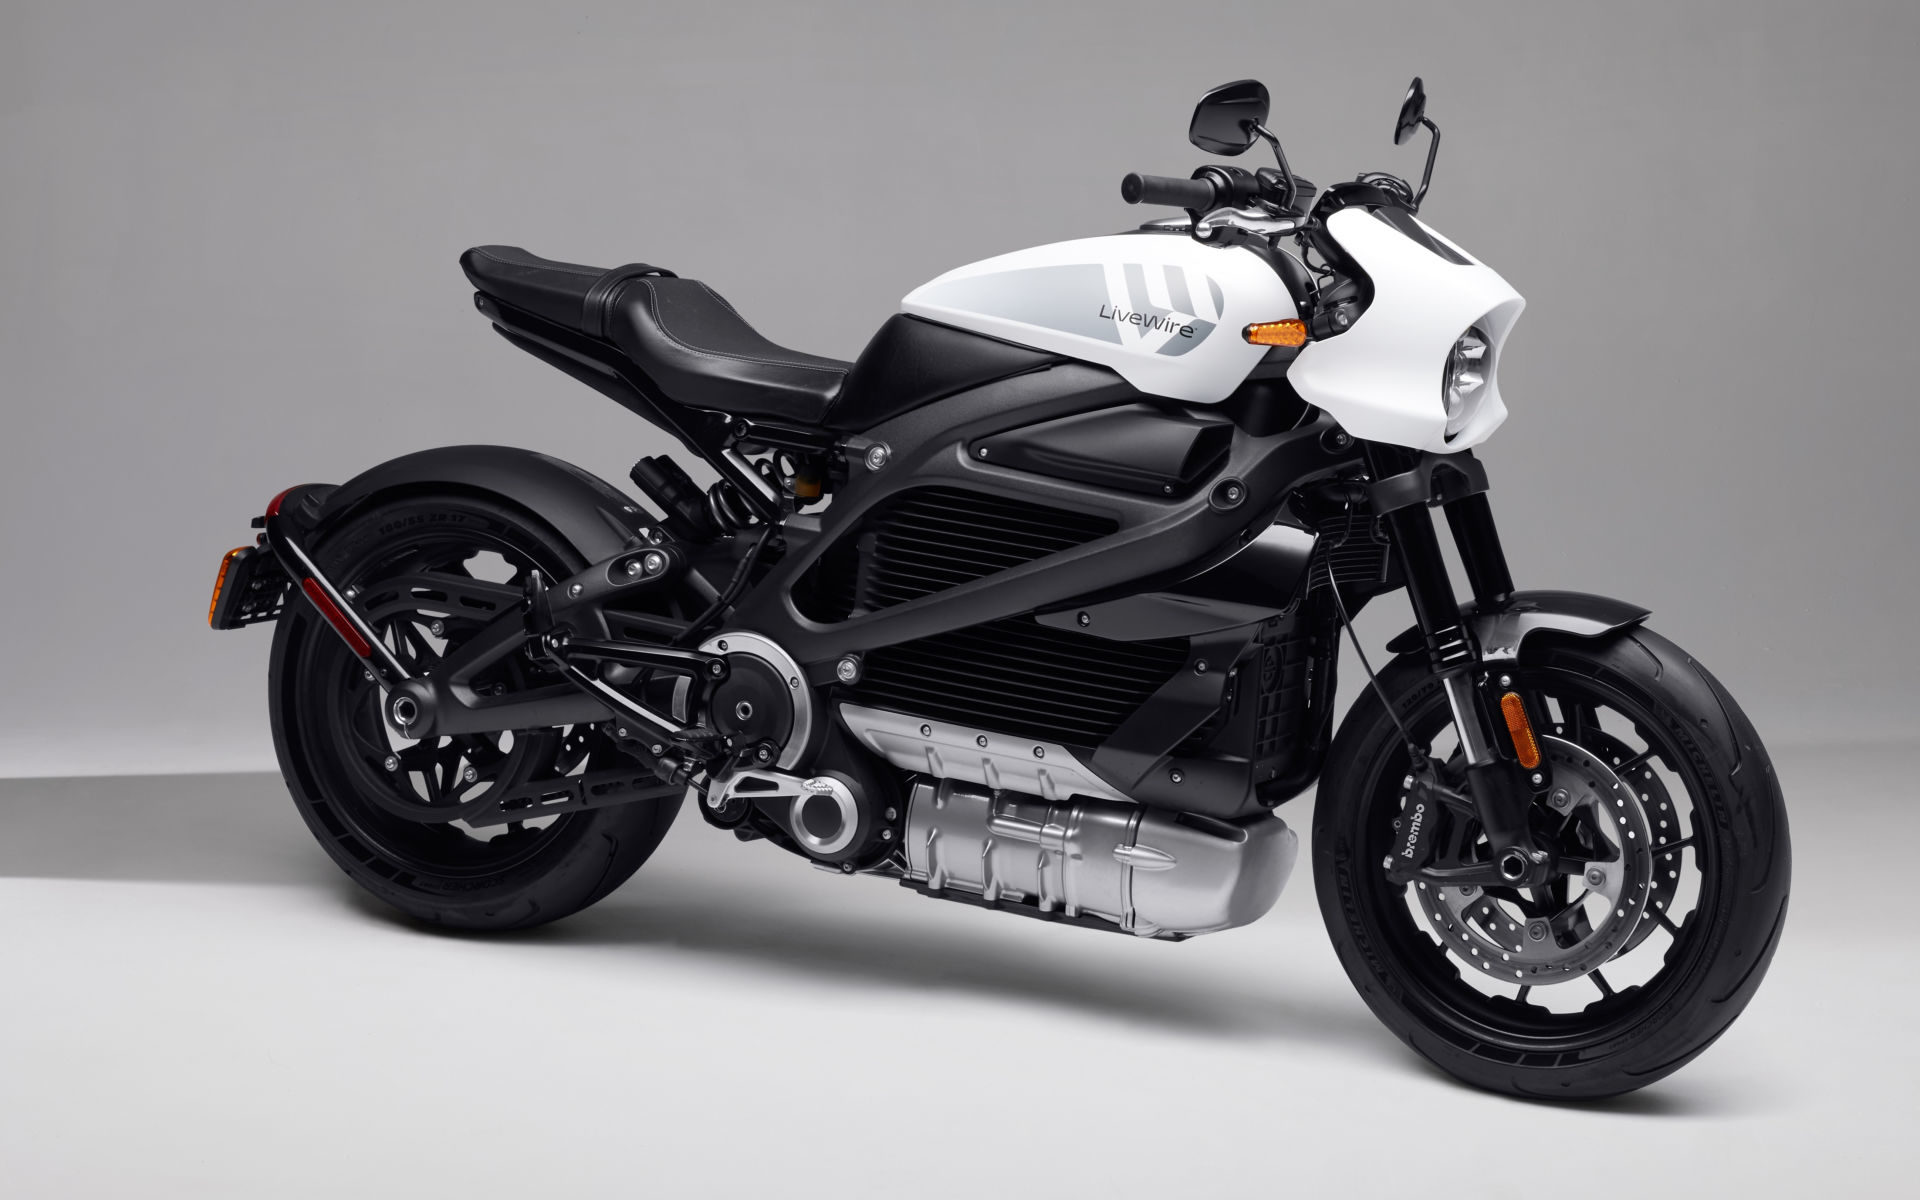 A LiveWire ONE electric motorcycle. Photo courtesy Harley-Davidson.